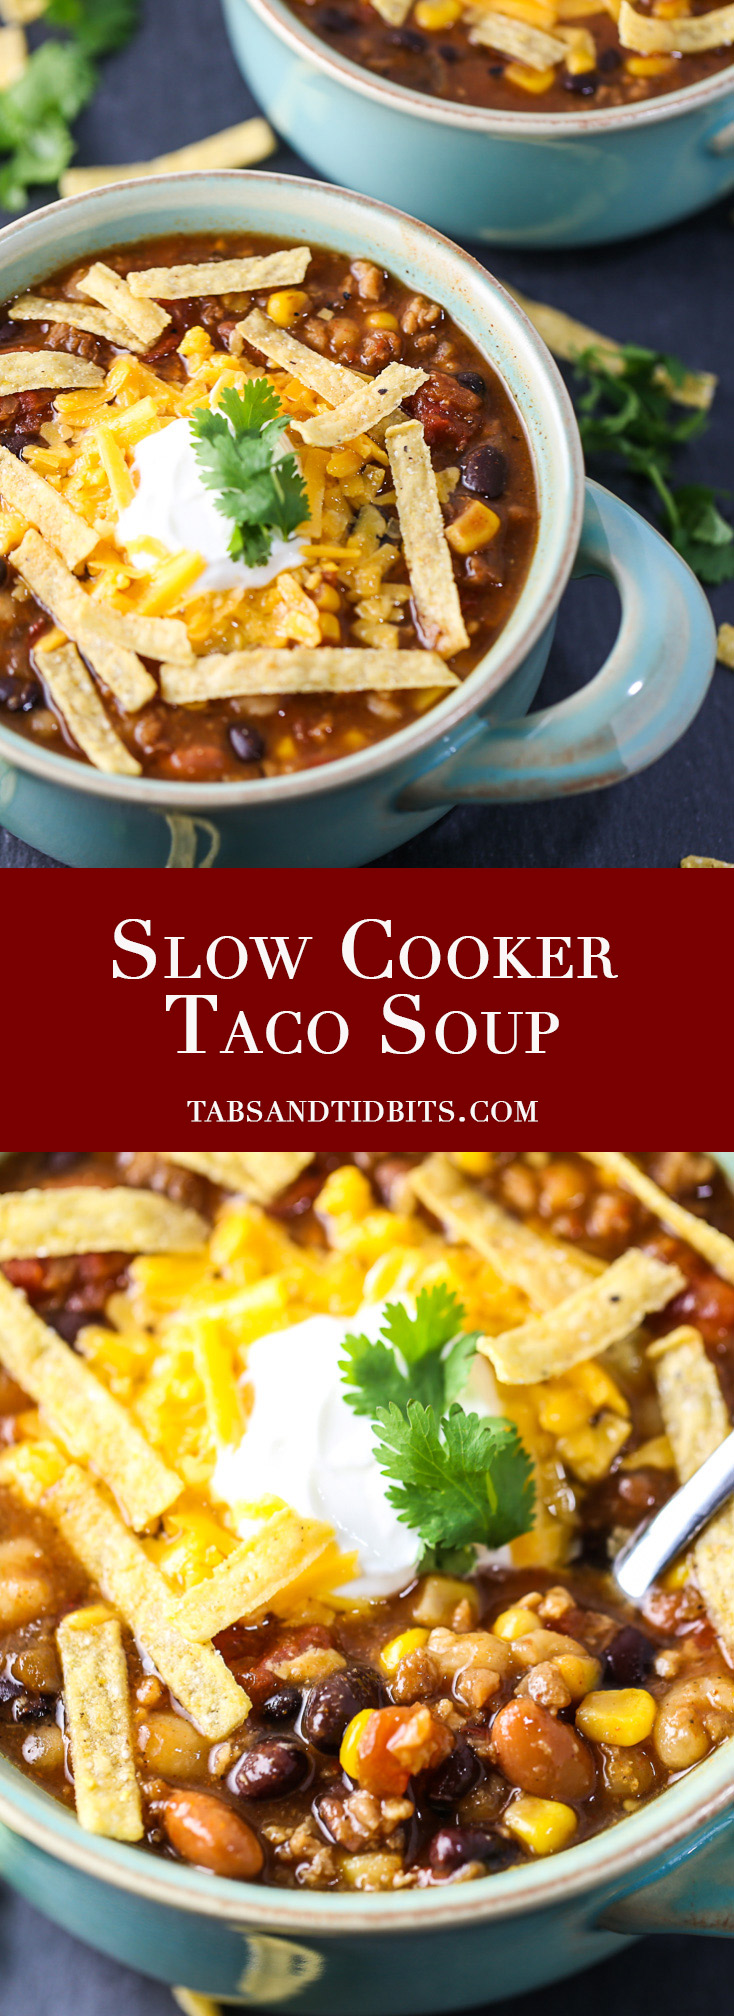 Slow Cooker Taco Soup - A hearty and spicy soup filled with plenty of seasoning and protein!